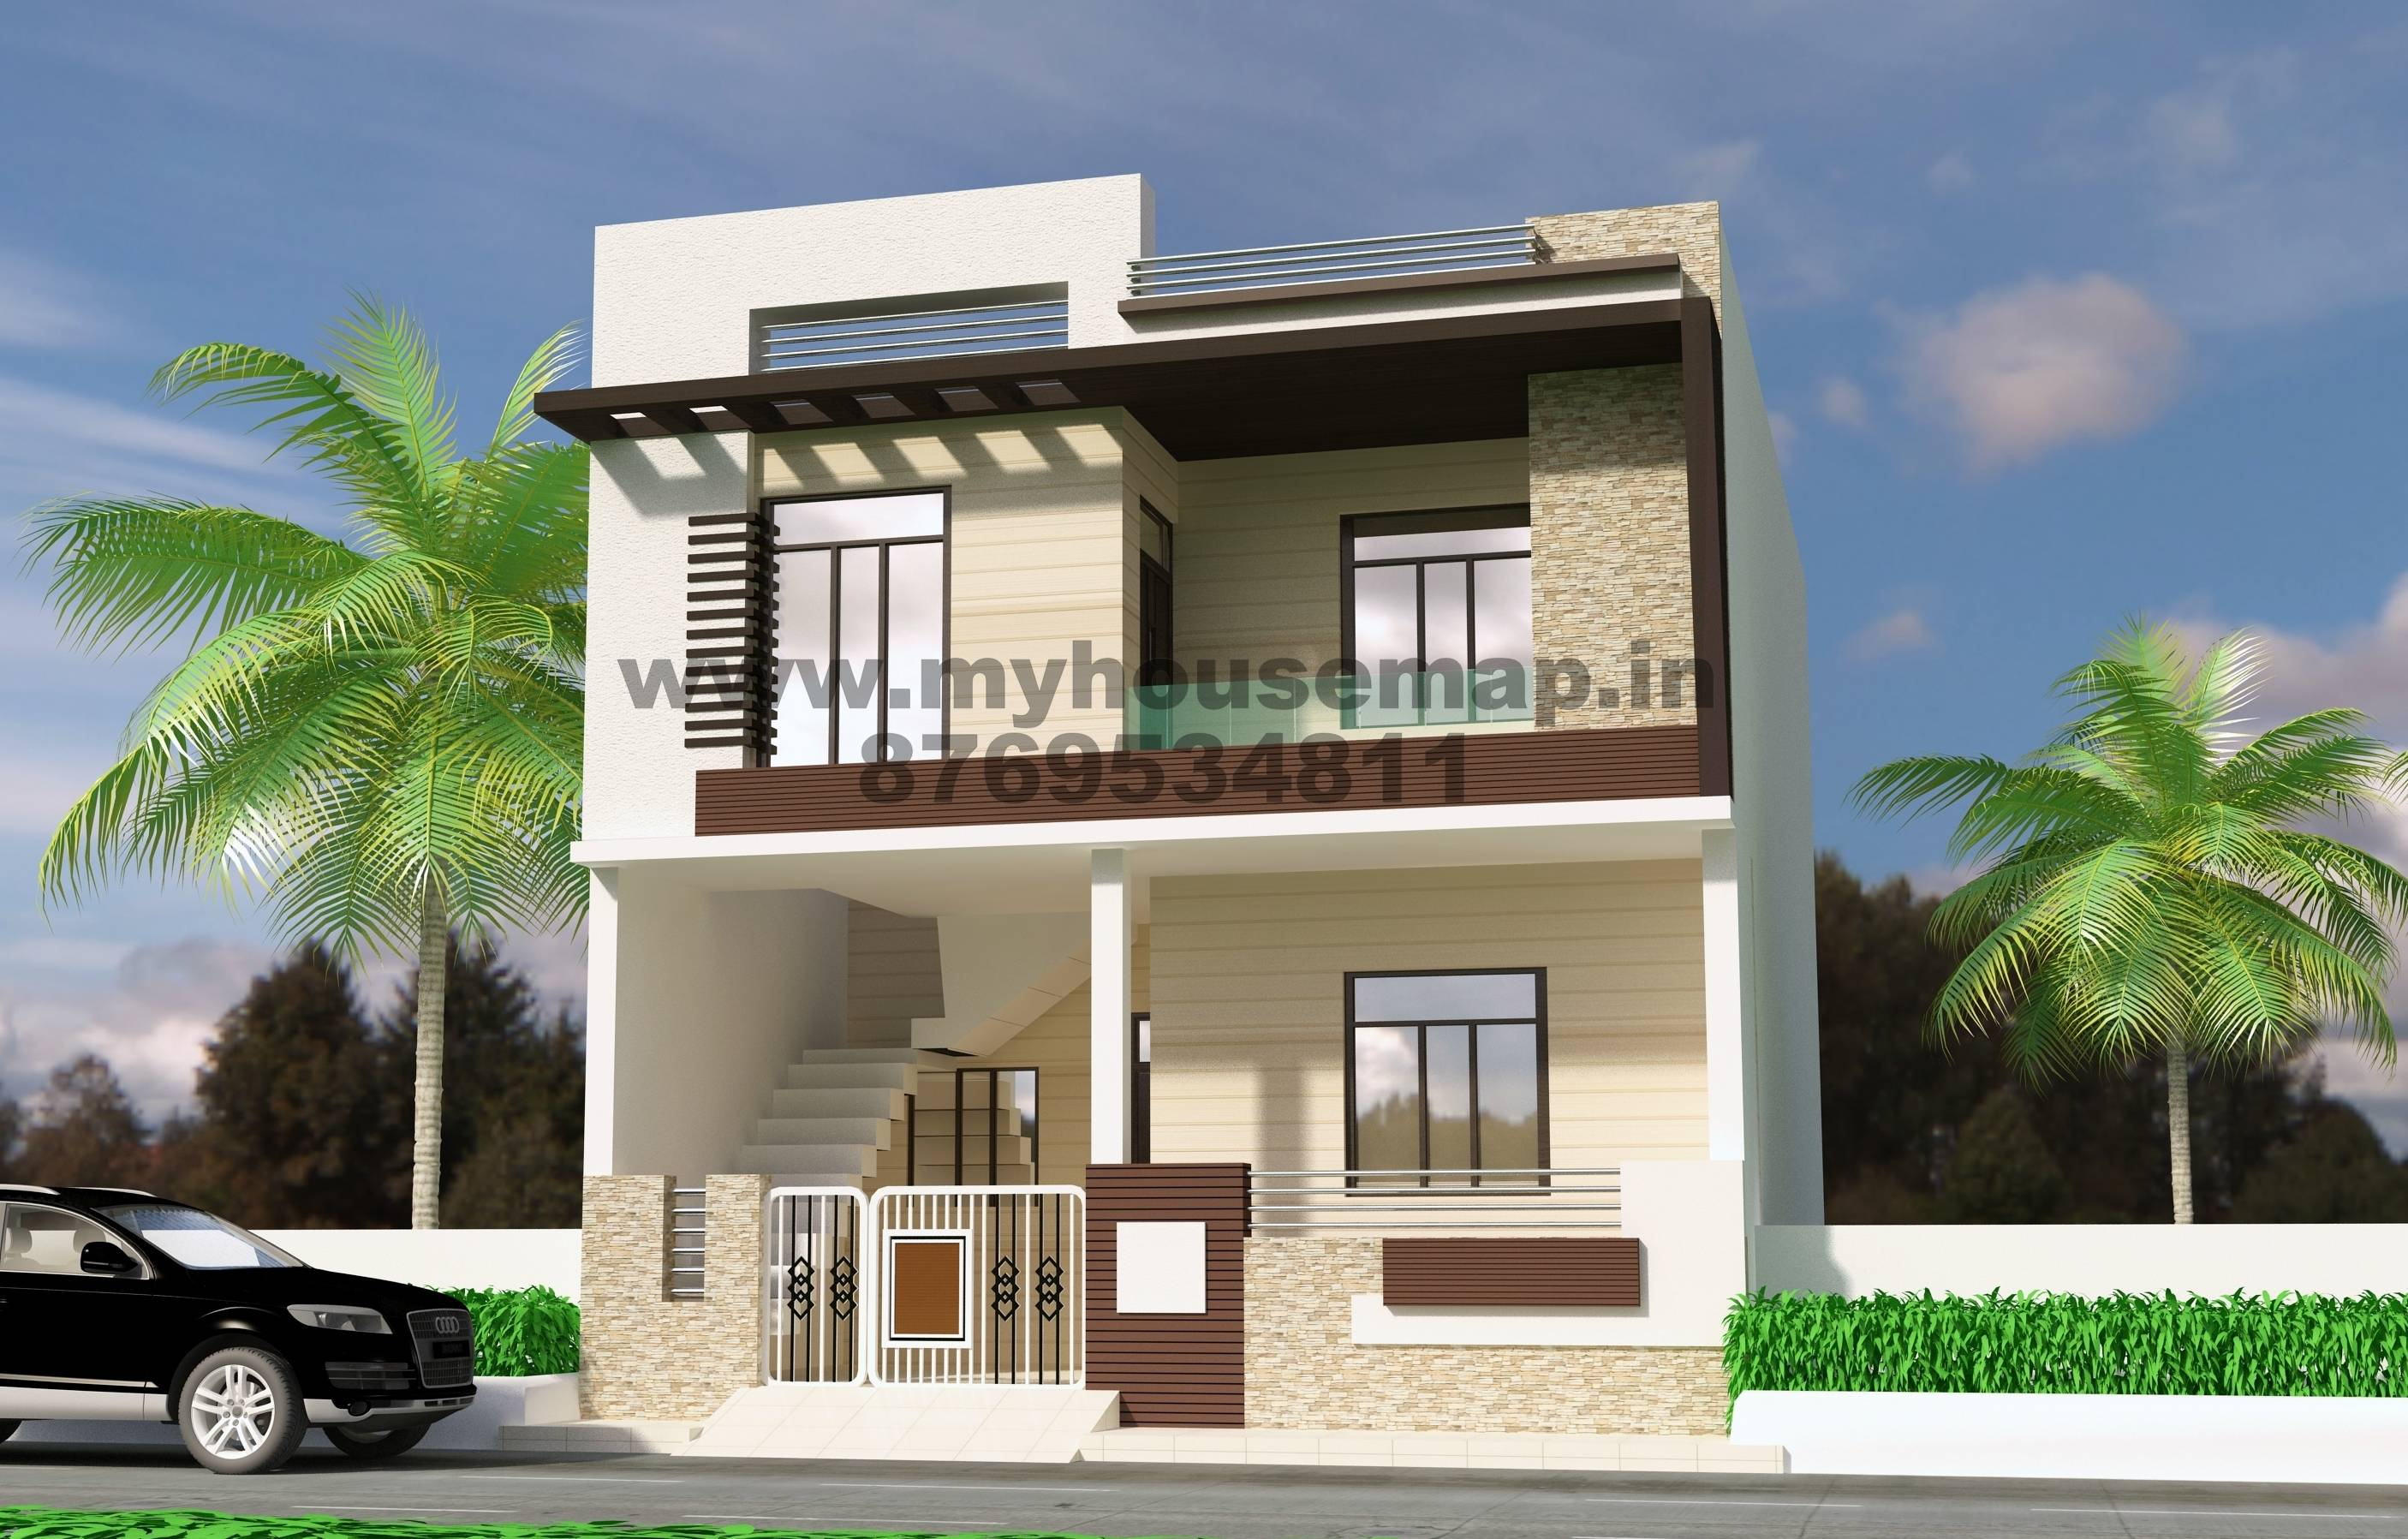 Front Elevation Design Modern Duplex - House Plans | #112826